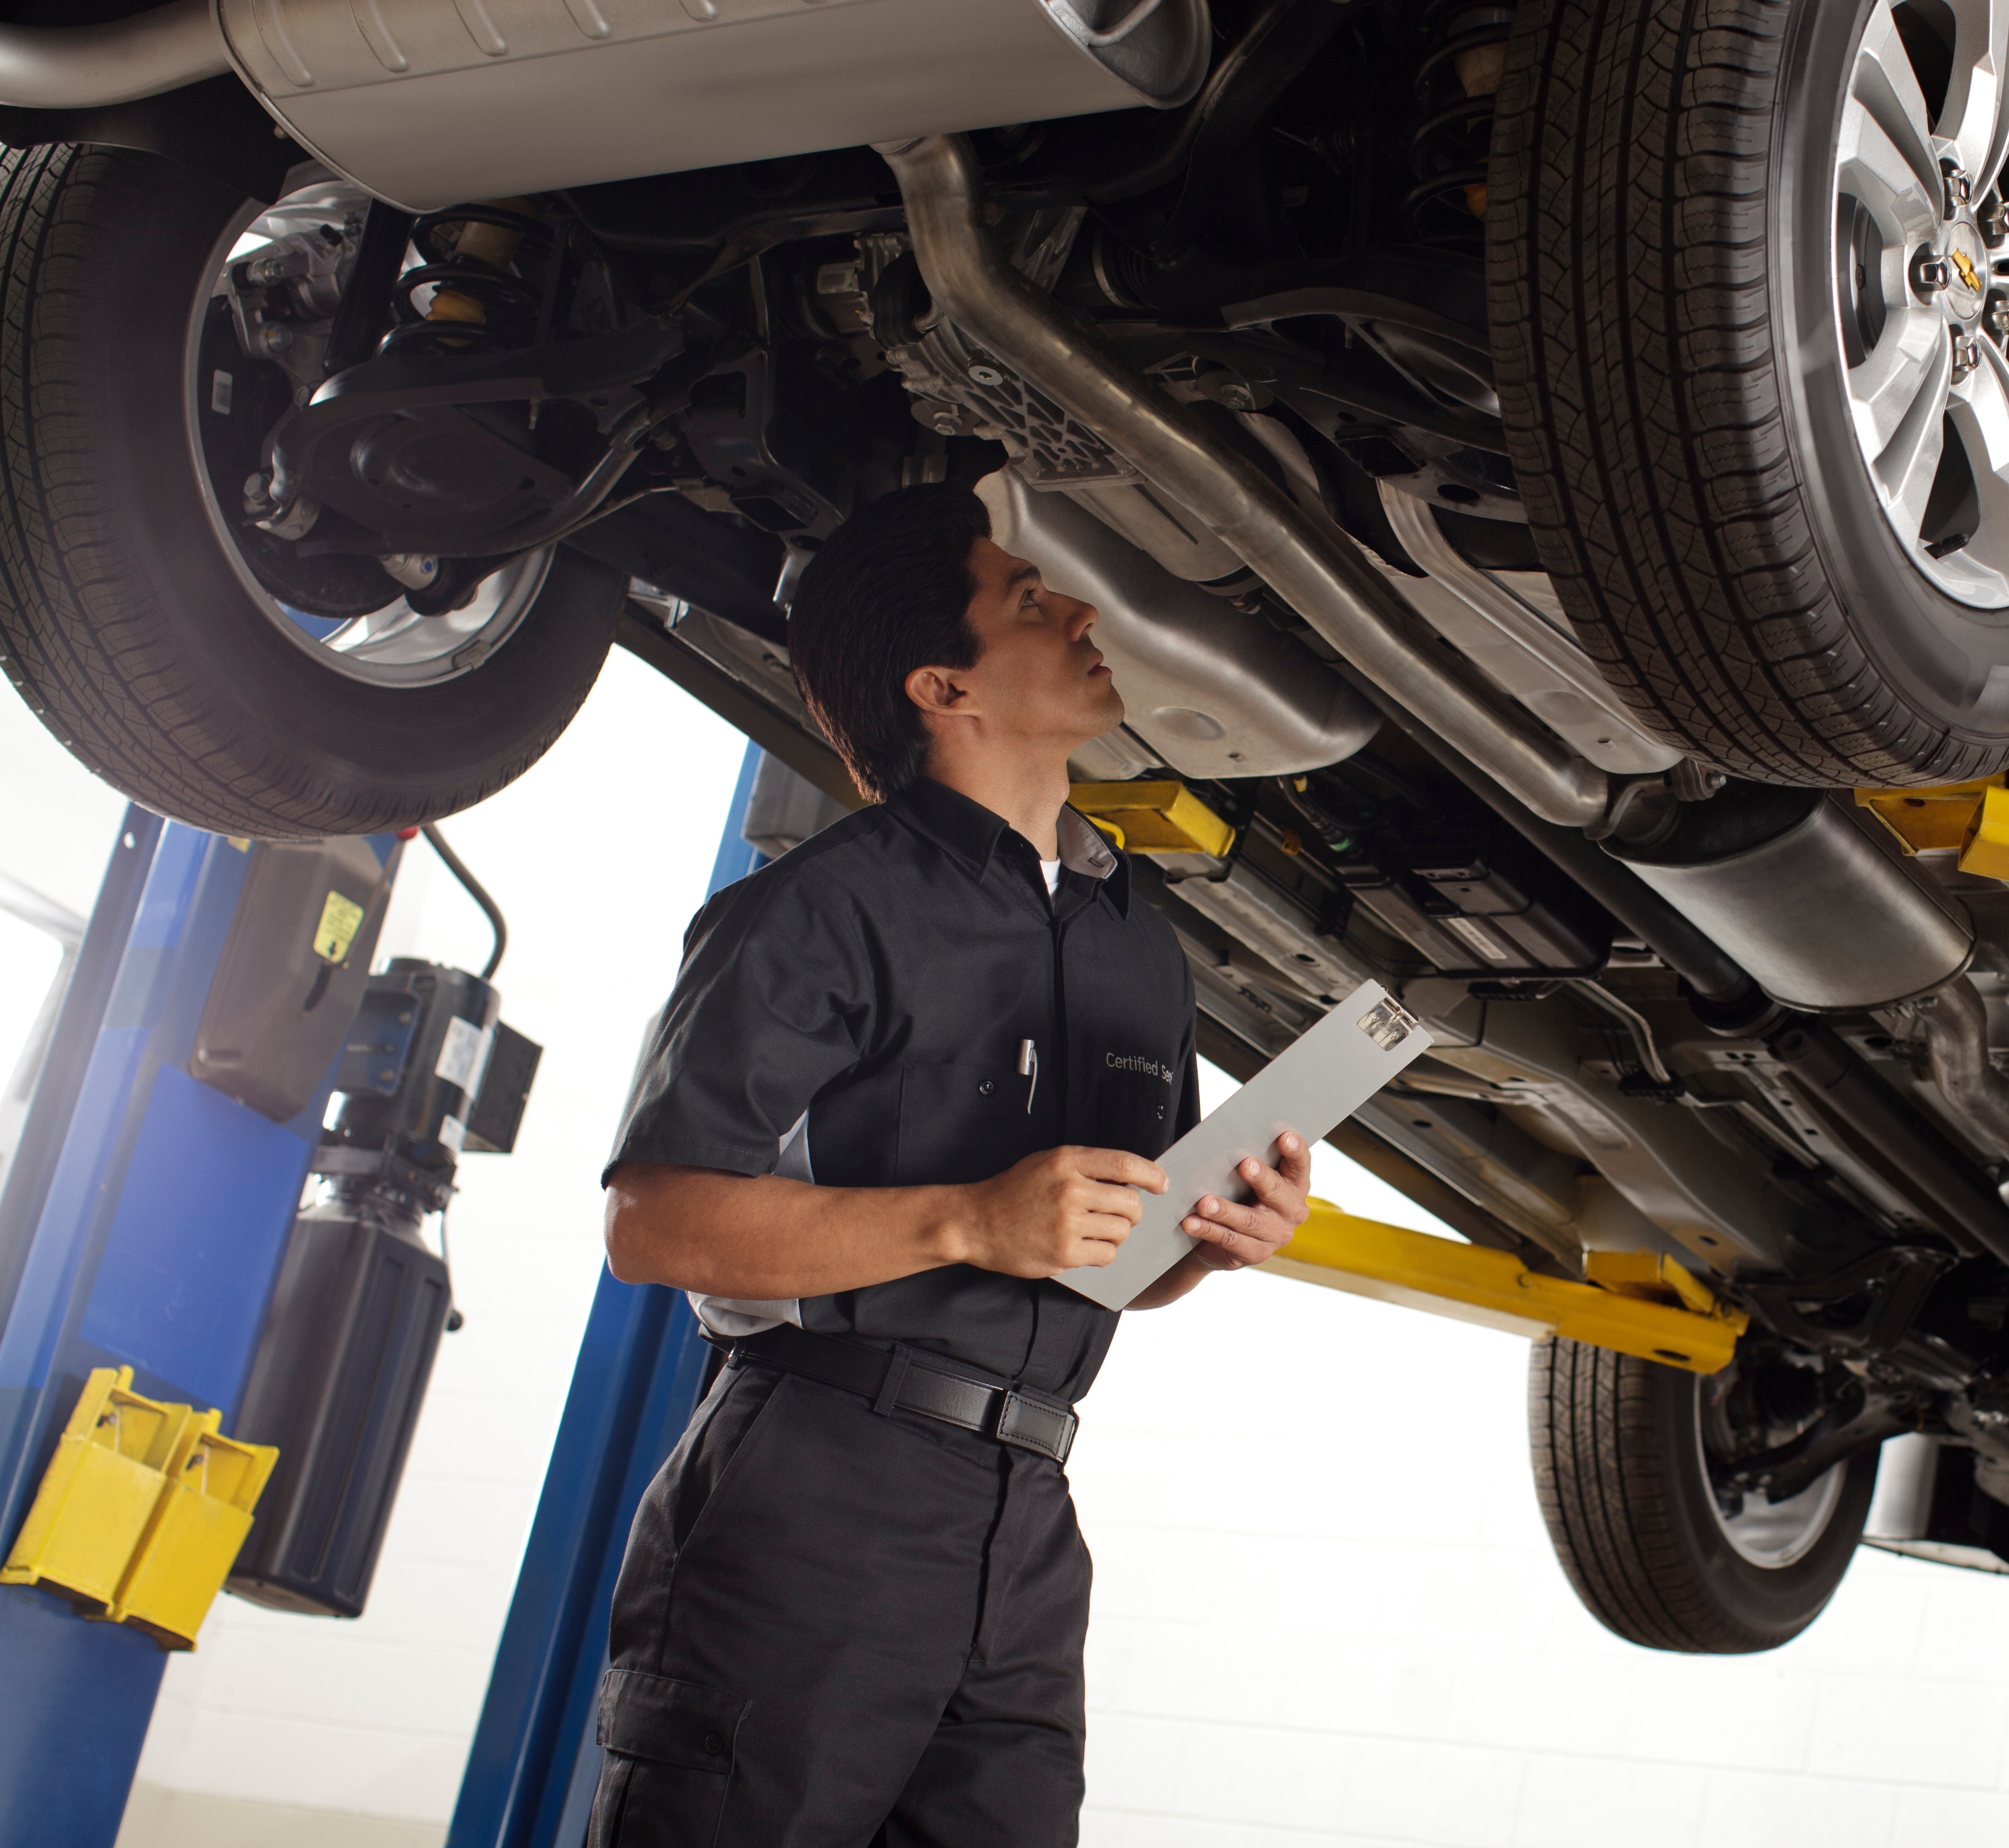 At apple used autos shakopee we take pride in fixing it right the first time our certified techs perform all work from oil changes to transmission